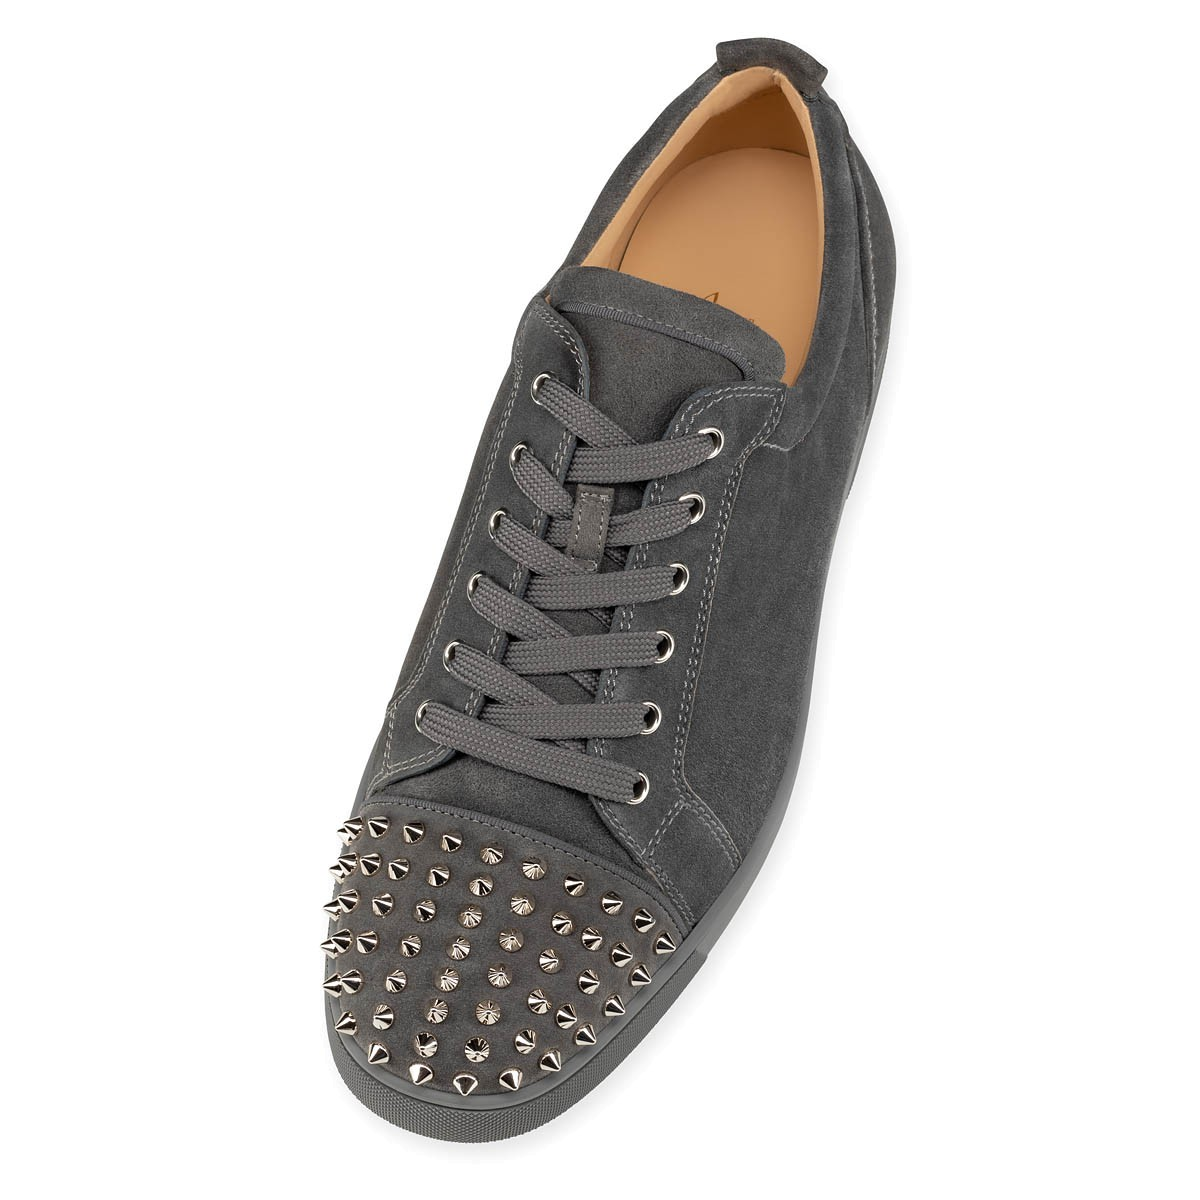 Shoes - Louis Junior Spikes - Christian Louboutin